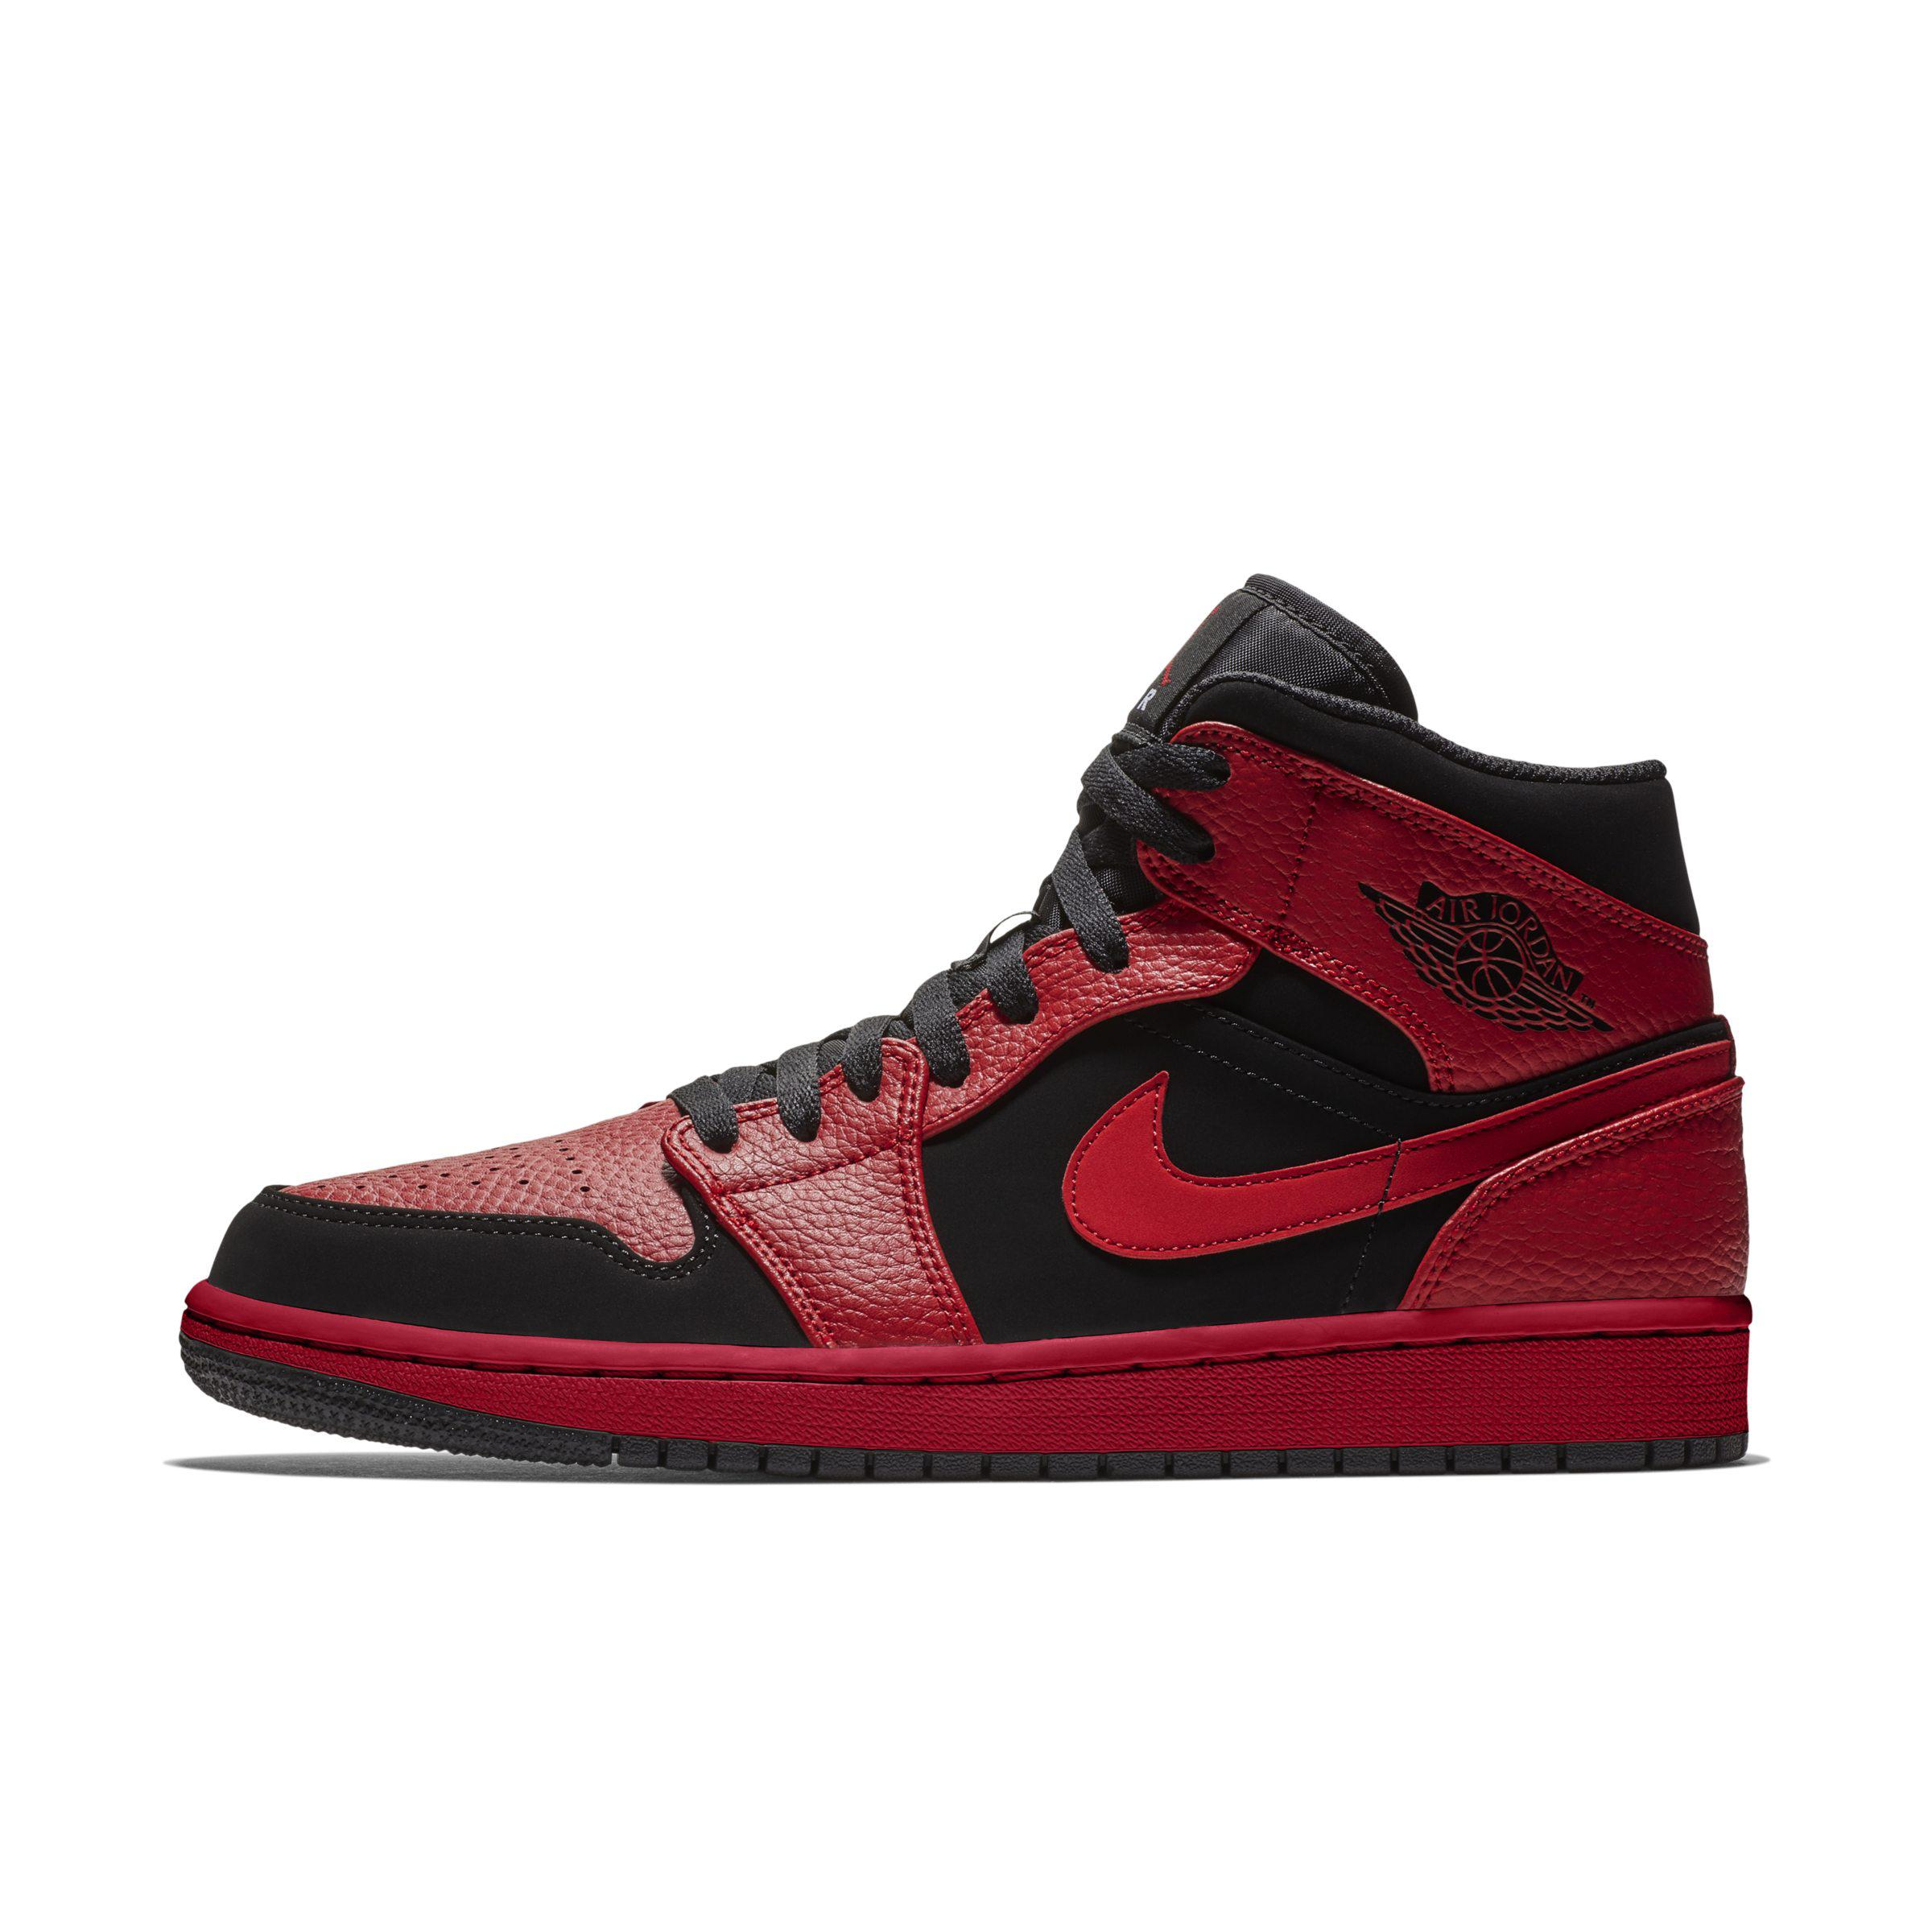 official photos 311f1 7340a Nike - Black Air Jordan 1 Mid Shoe for Men - Lyst. View fullscreen